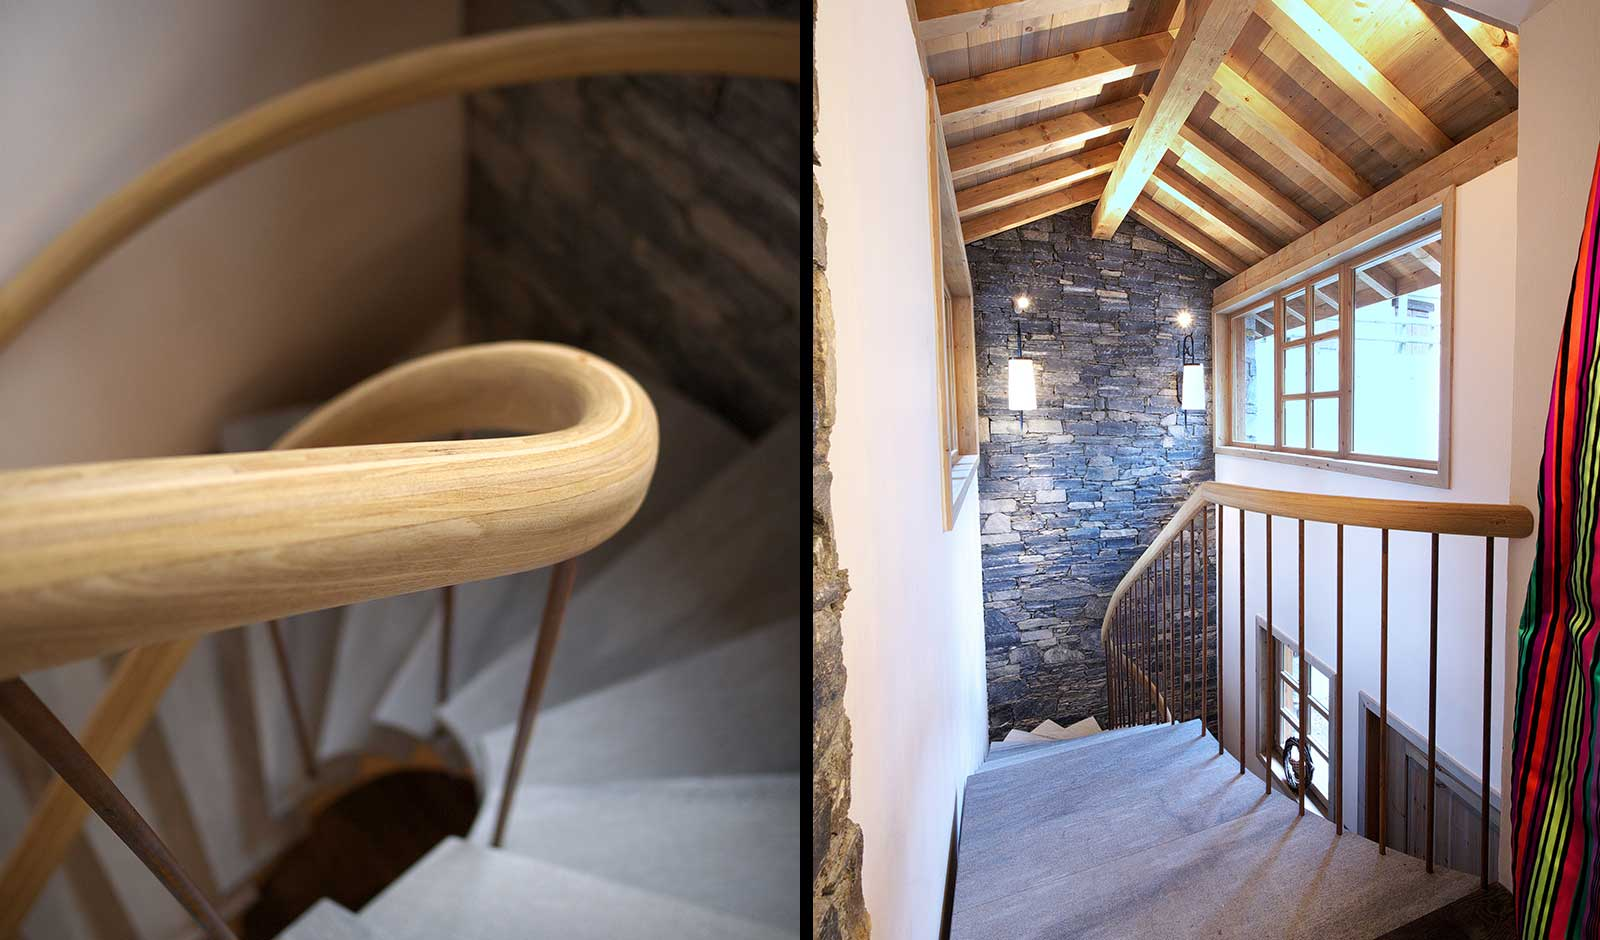 chalet-bonhomme-de-neige-3-atelier-crea-and-co-architecte-design-project-manager-meribel-savoie